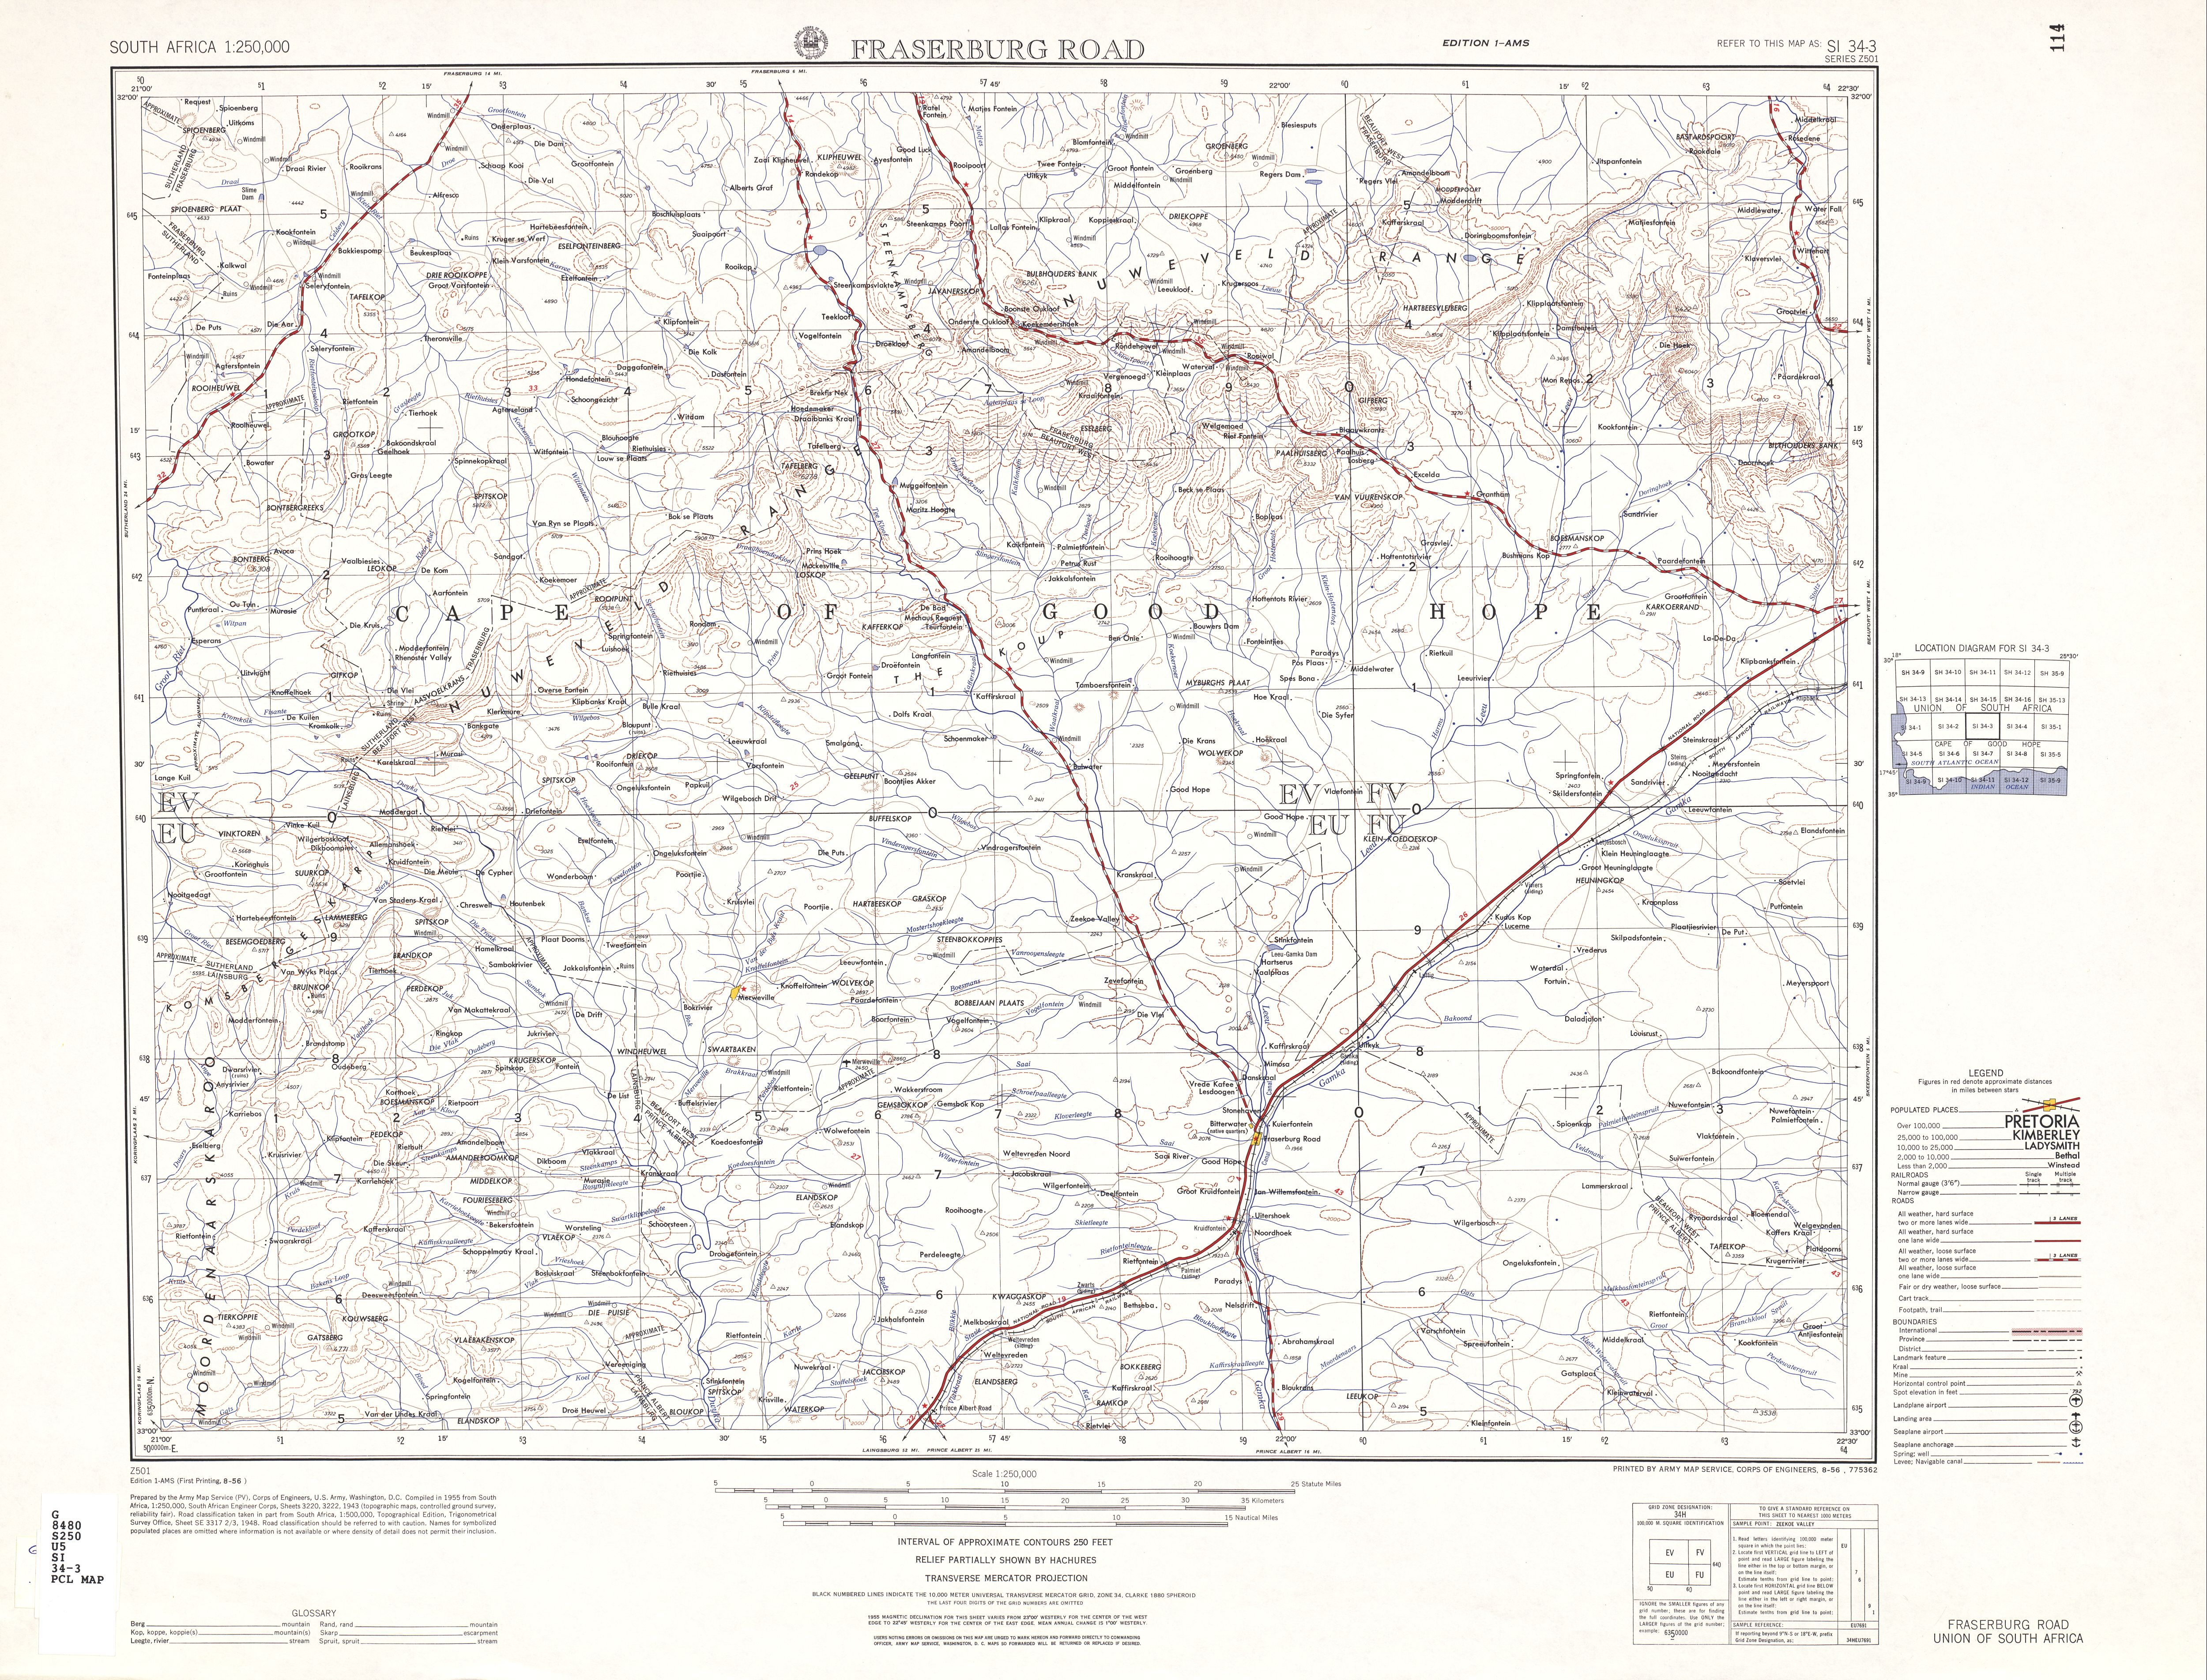 Fraserburg Road Topographic Map Sheet, Southern Africa 1954